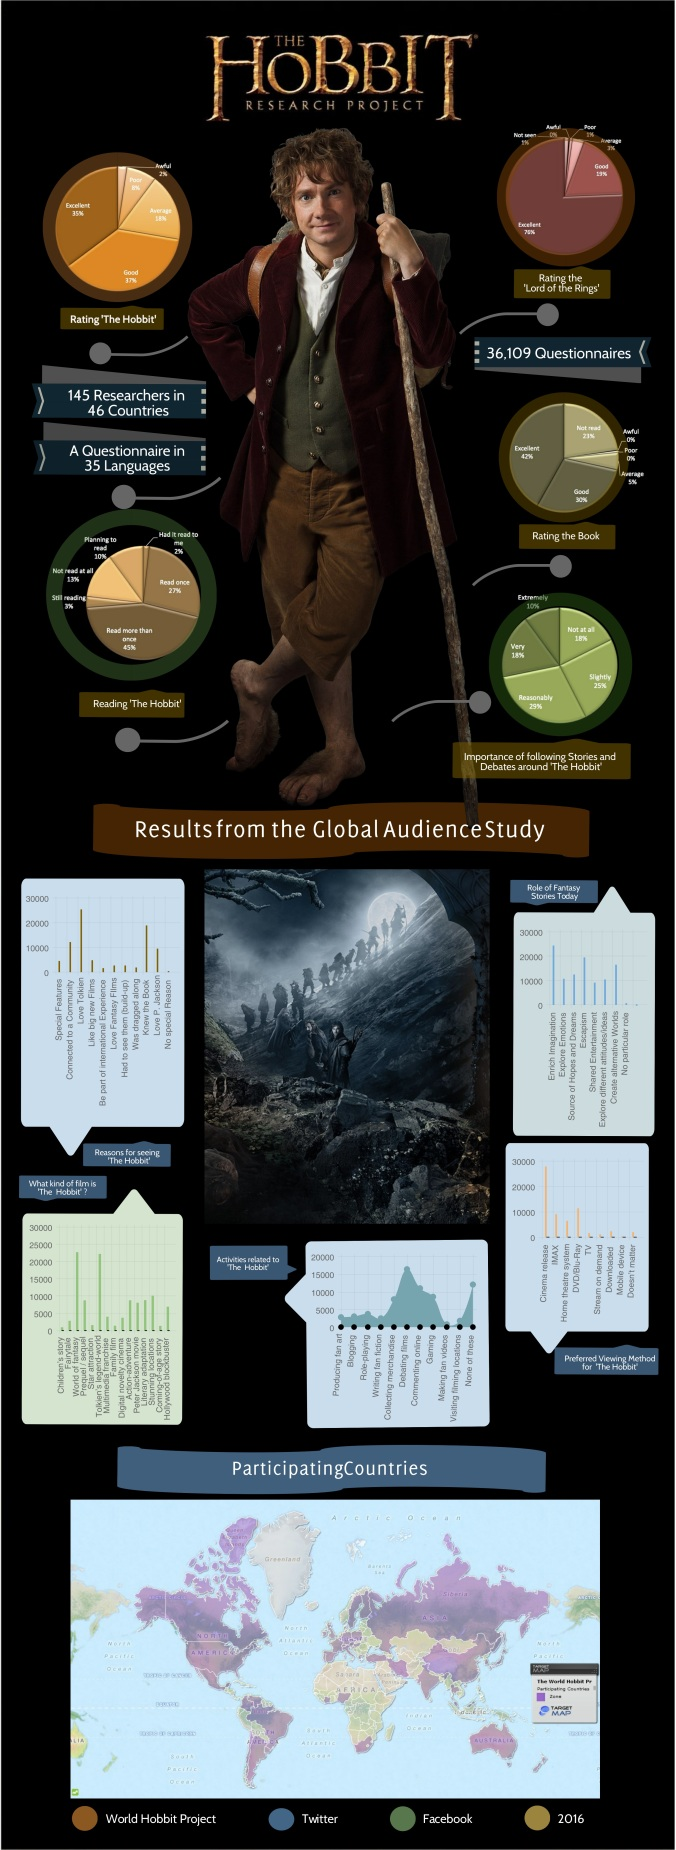 WorldHobbitProjectResults-1